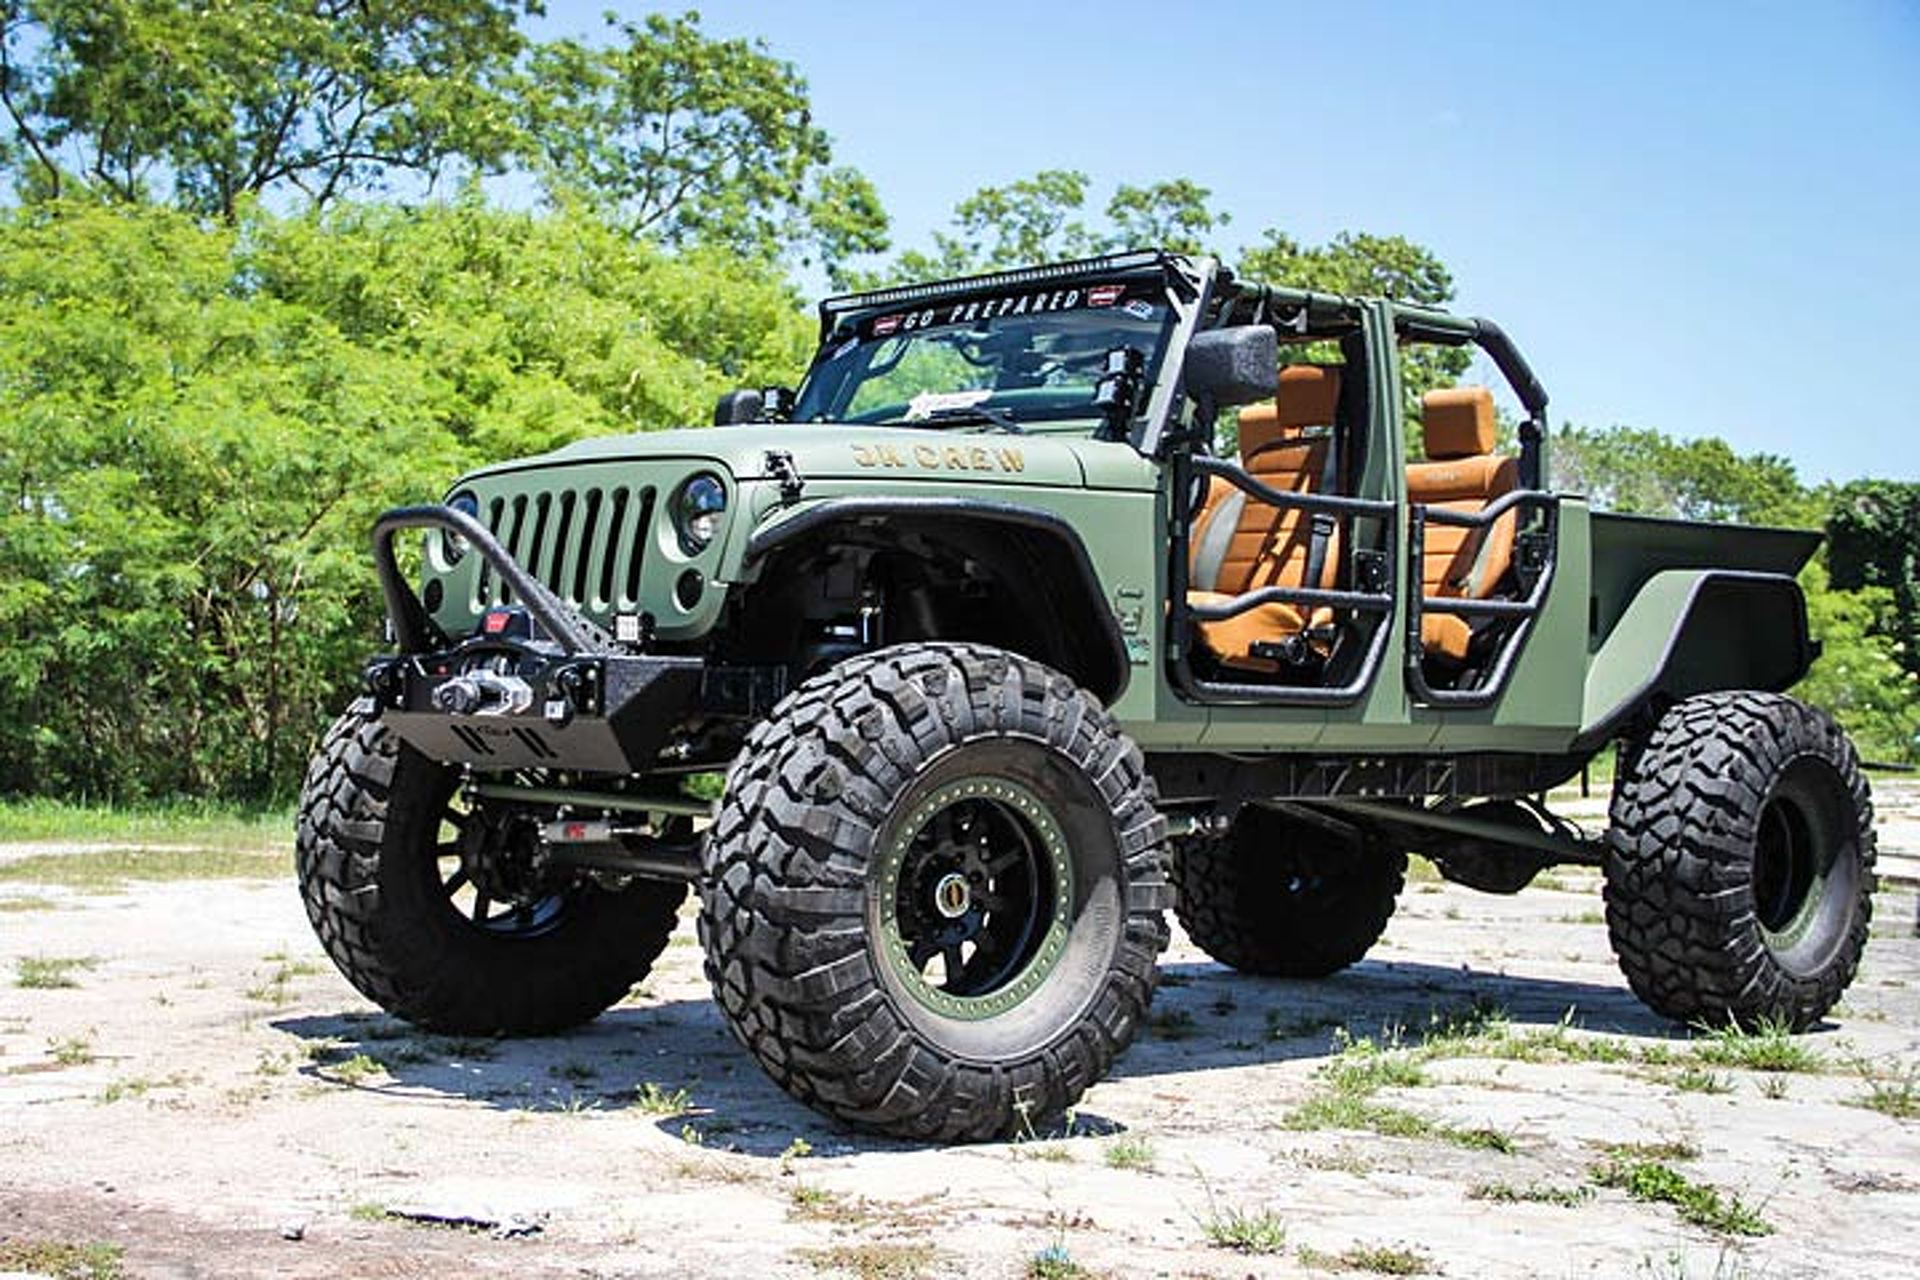 The 'JK Crew' is a Jeep Wrangler Cranked Up to 11